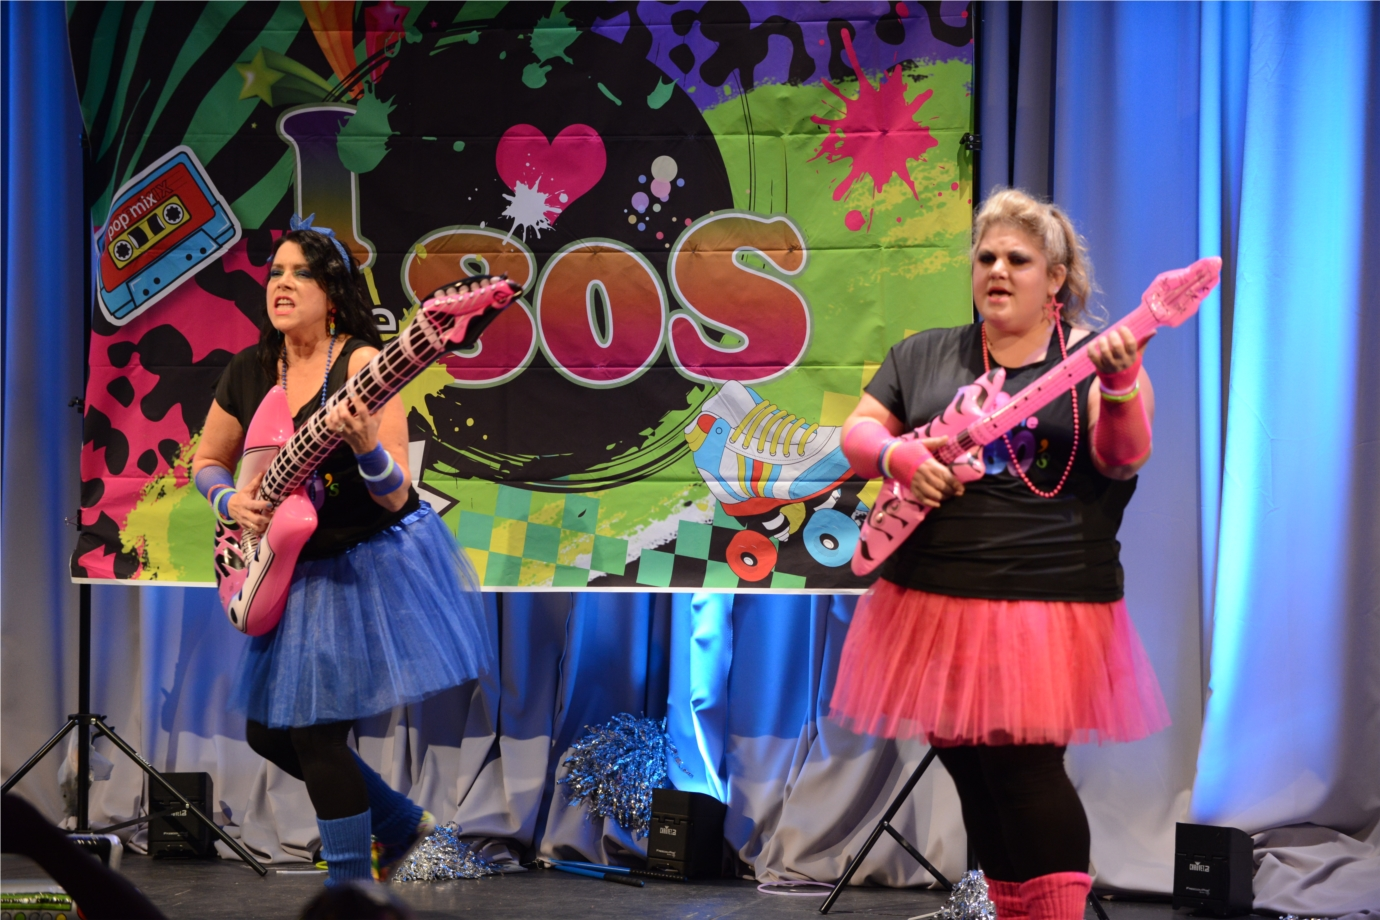 Associates provide the entertainment at Pinnacle's annual themed anniversary party -- like this Upstate group that performed a girl-band rock medley in the most recent Lip Sync Remix battle. It's epic.